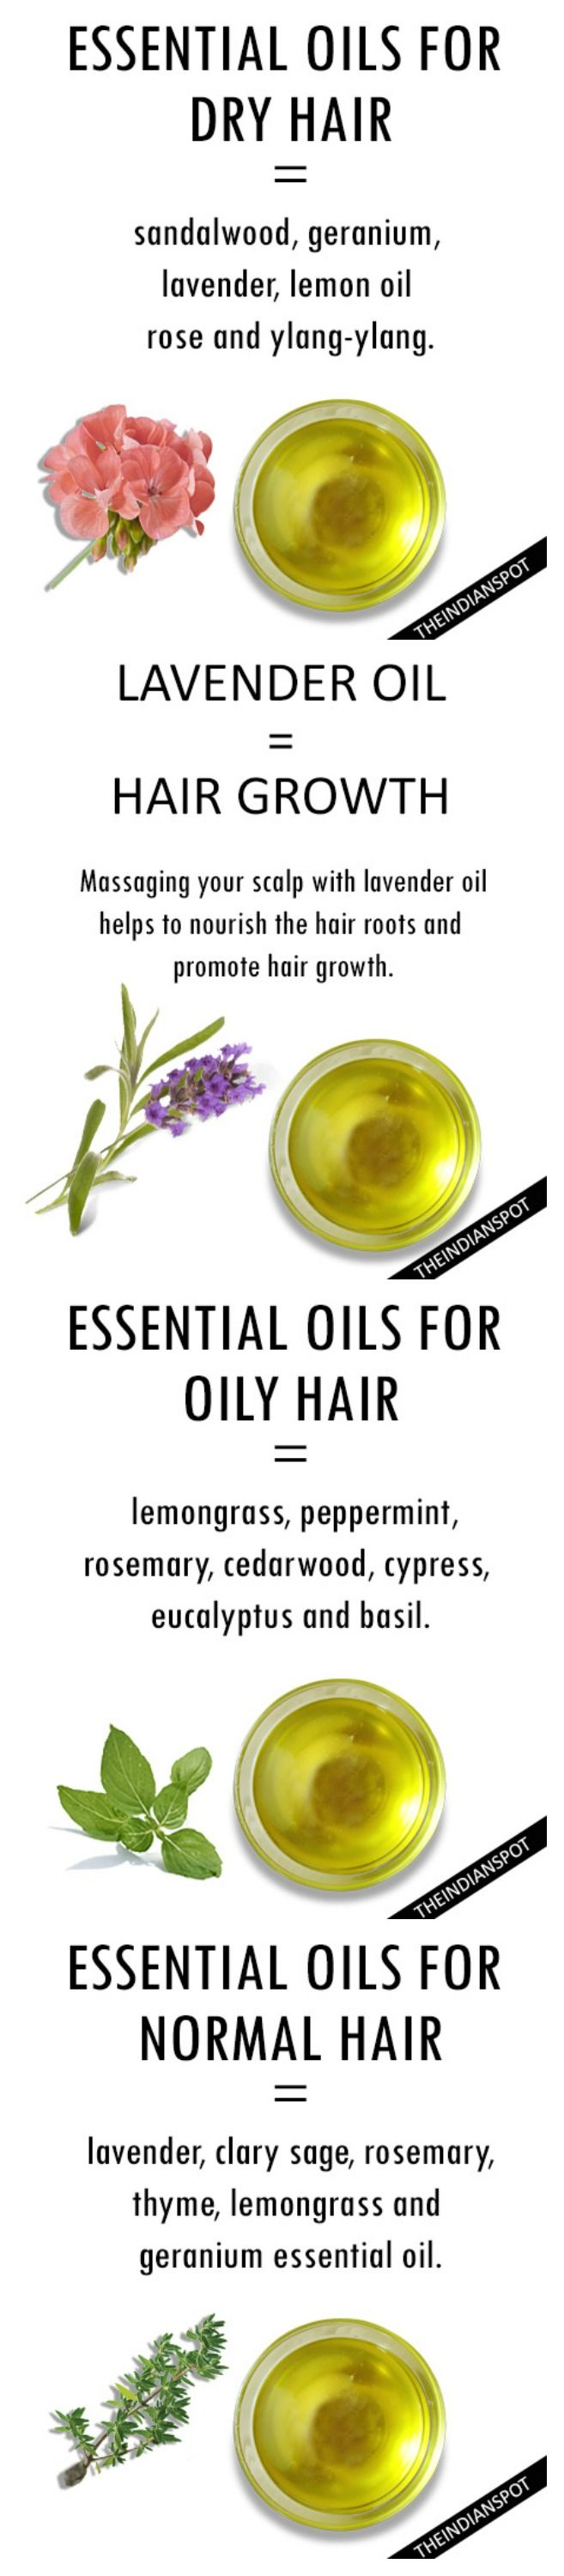 Natural remedies for hair growth and oily hair. Home remedies for hair, essential oils.